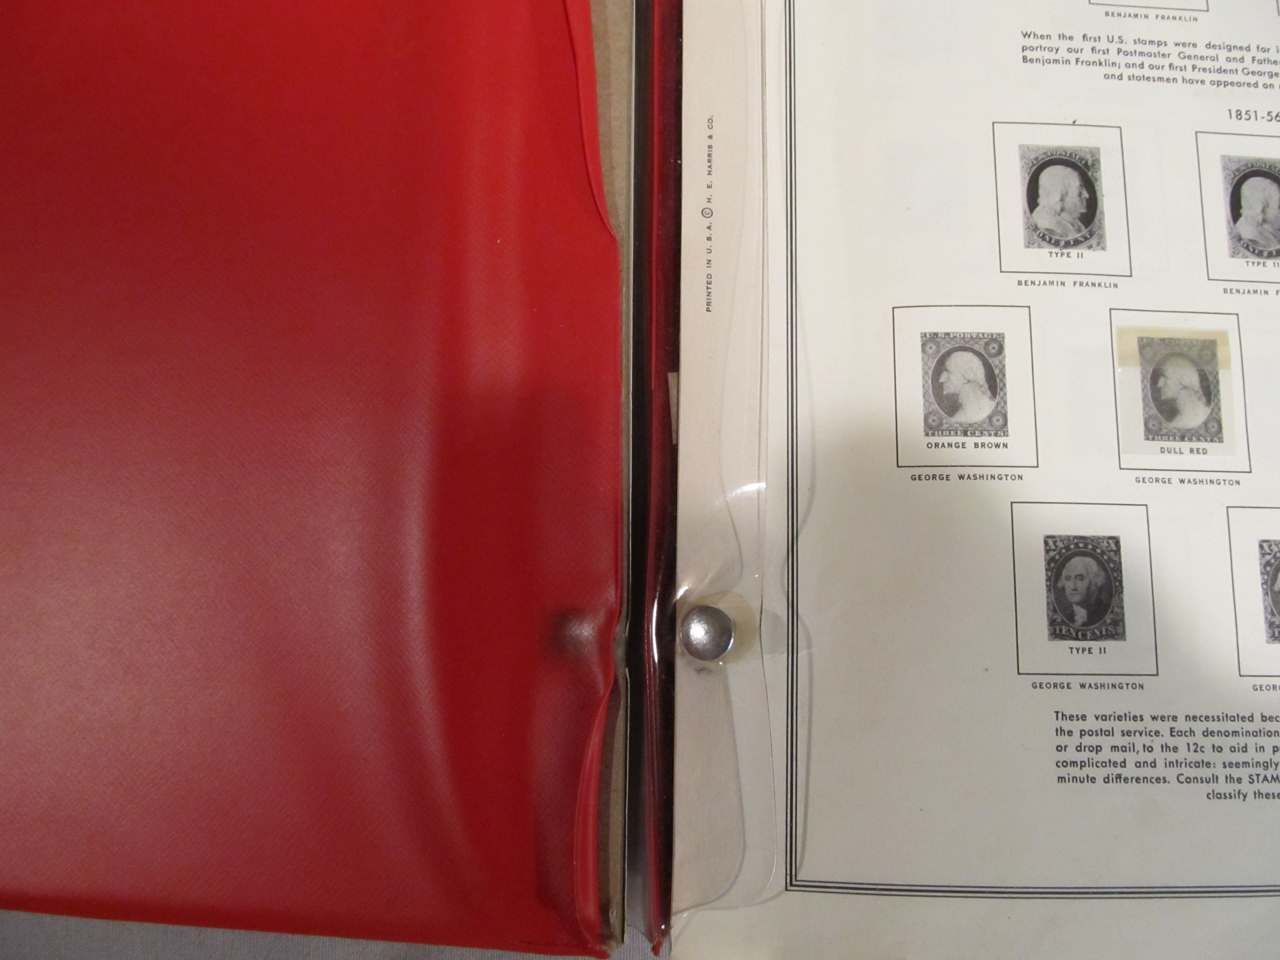 Scott's Minuteman Album - Inside pages and binding with